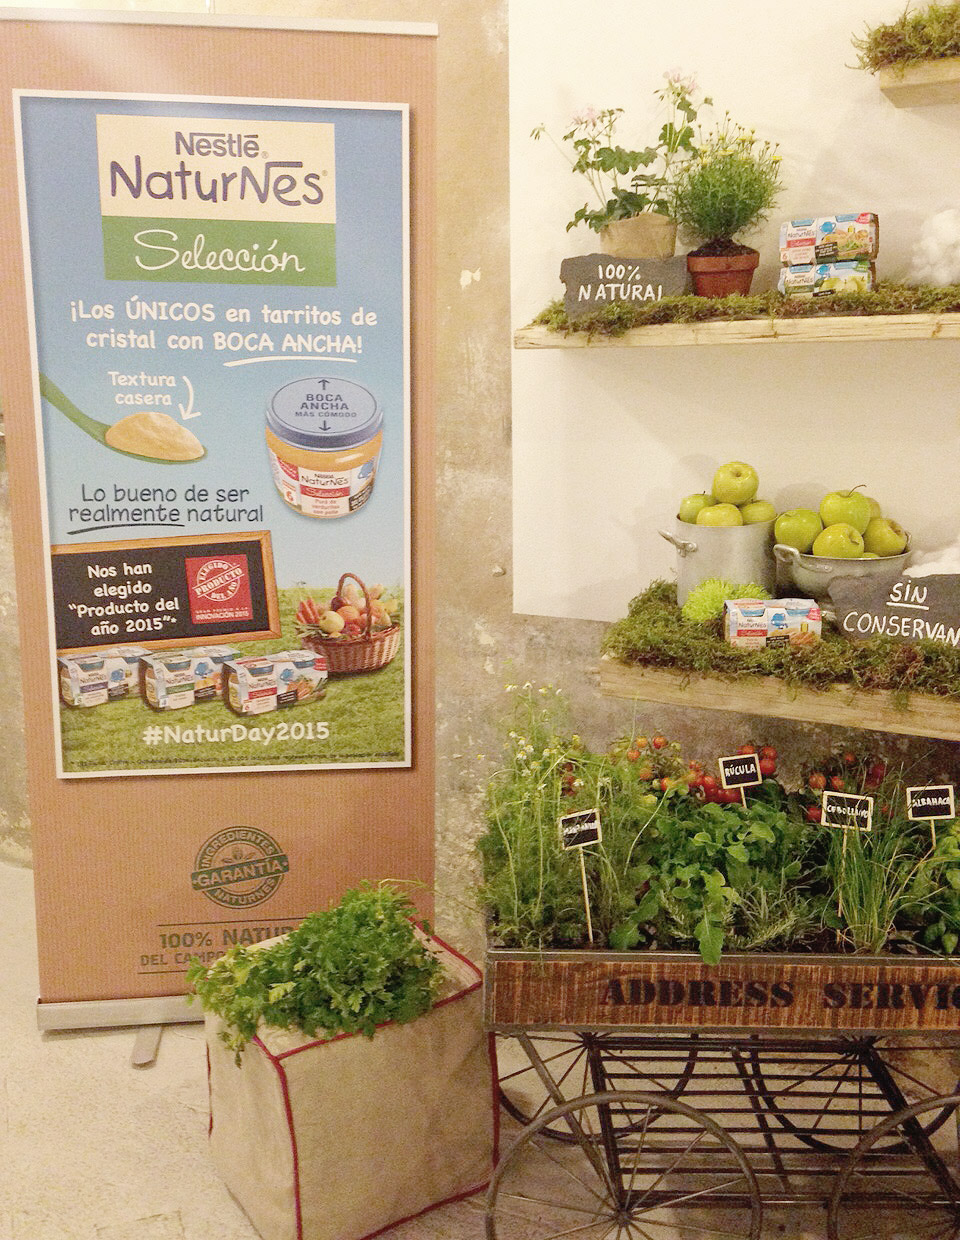 decoracion_evento_nestle_naturnes_la_tarara_1